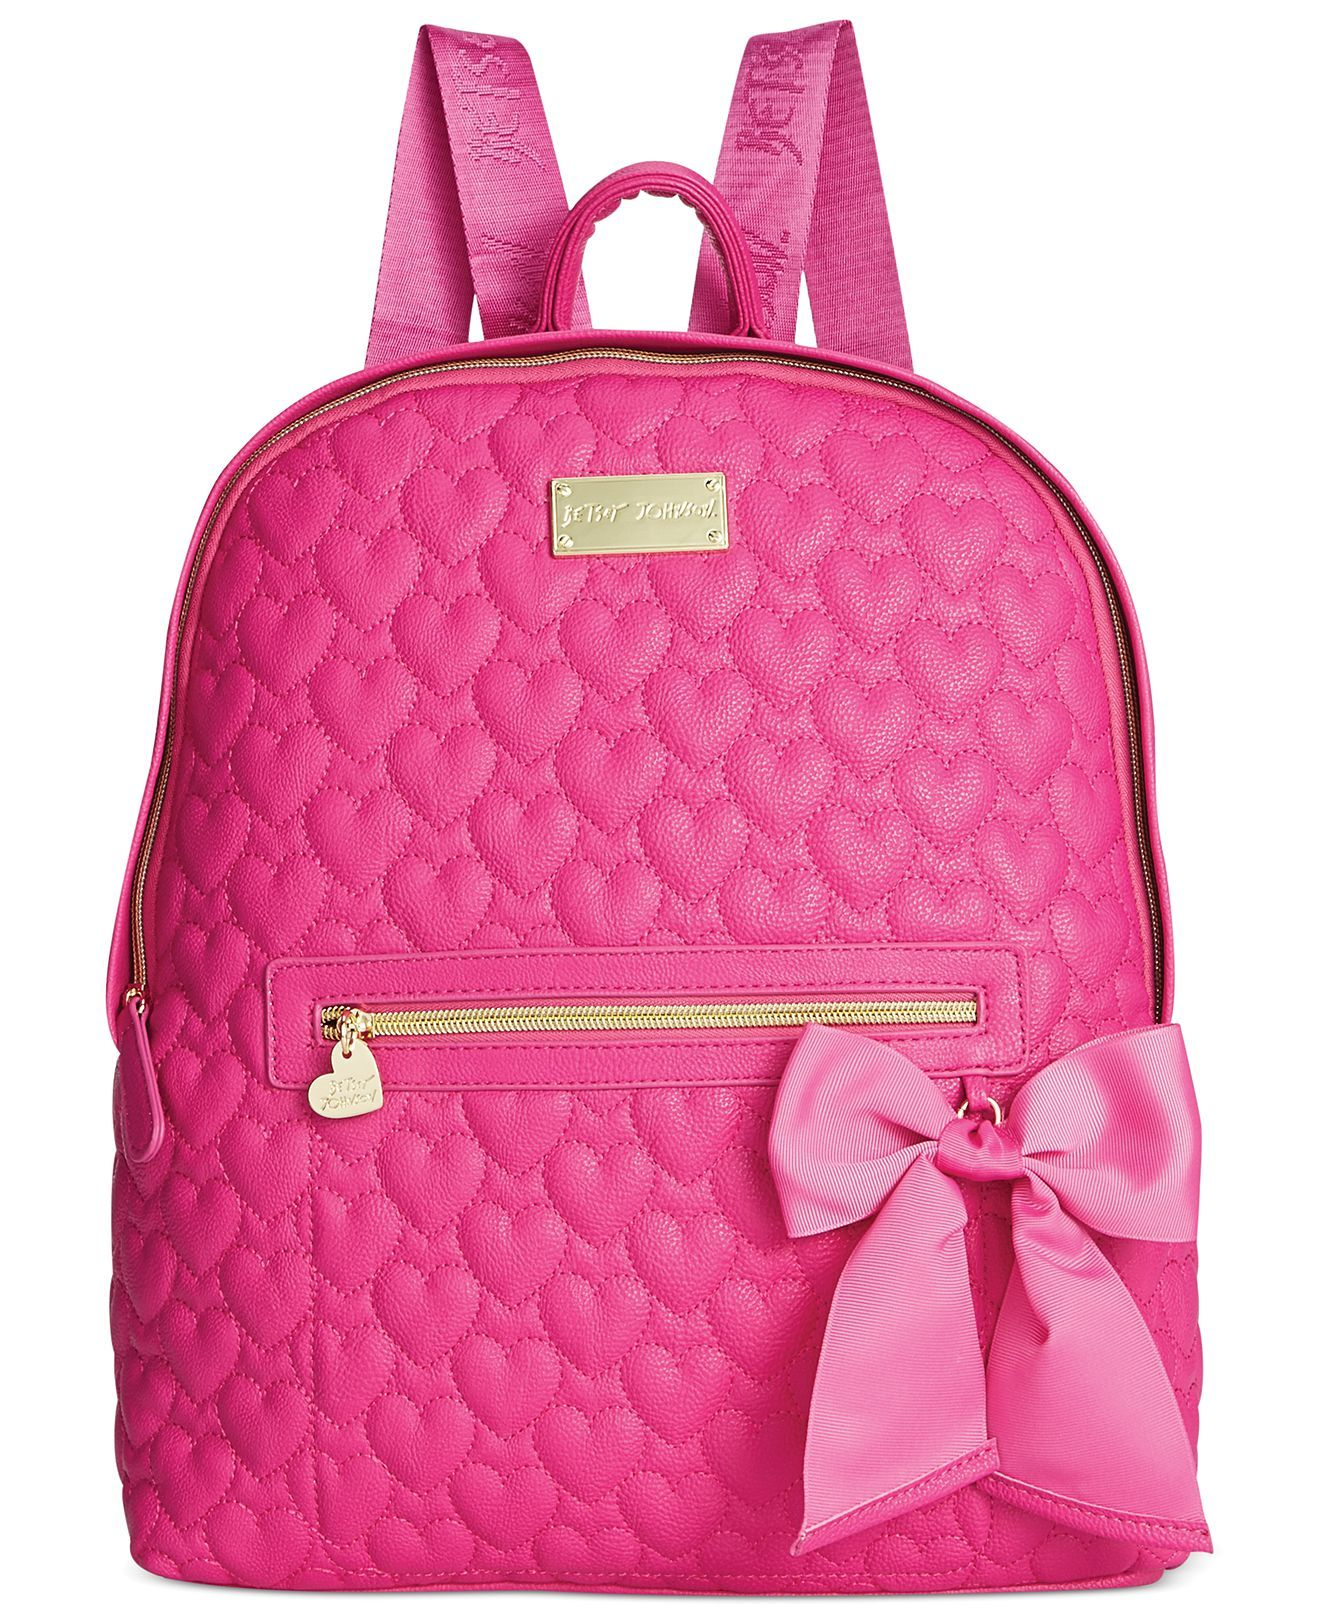 b08d551fd1 Betsey Johnson Quilted Backpack